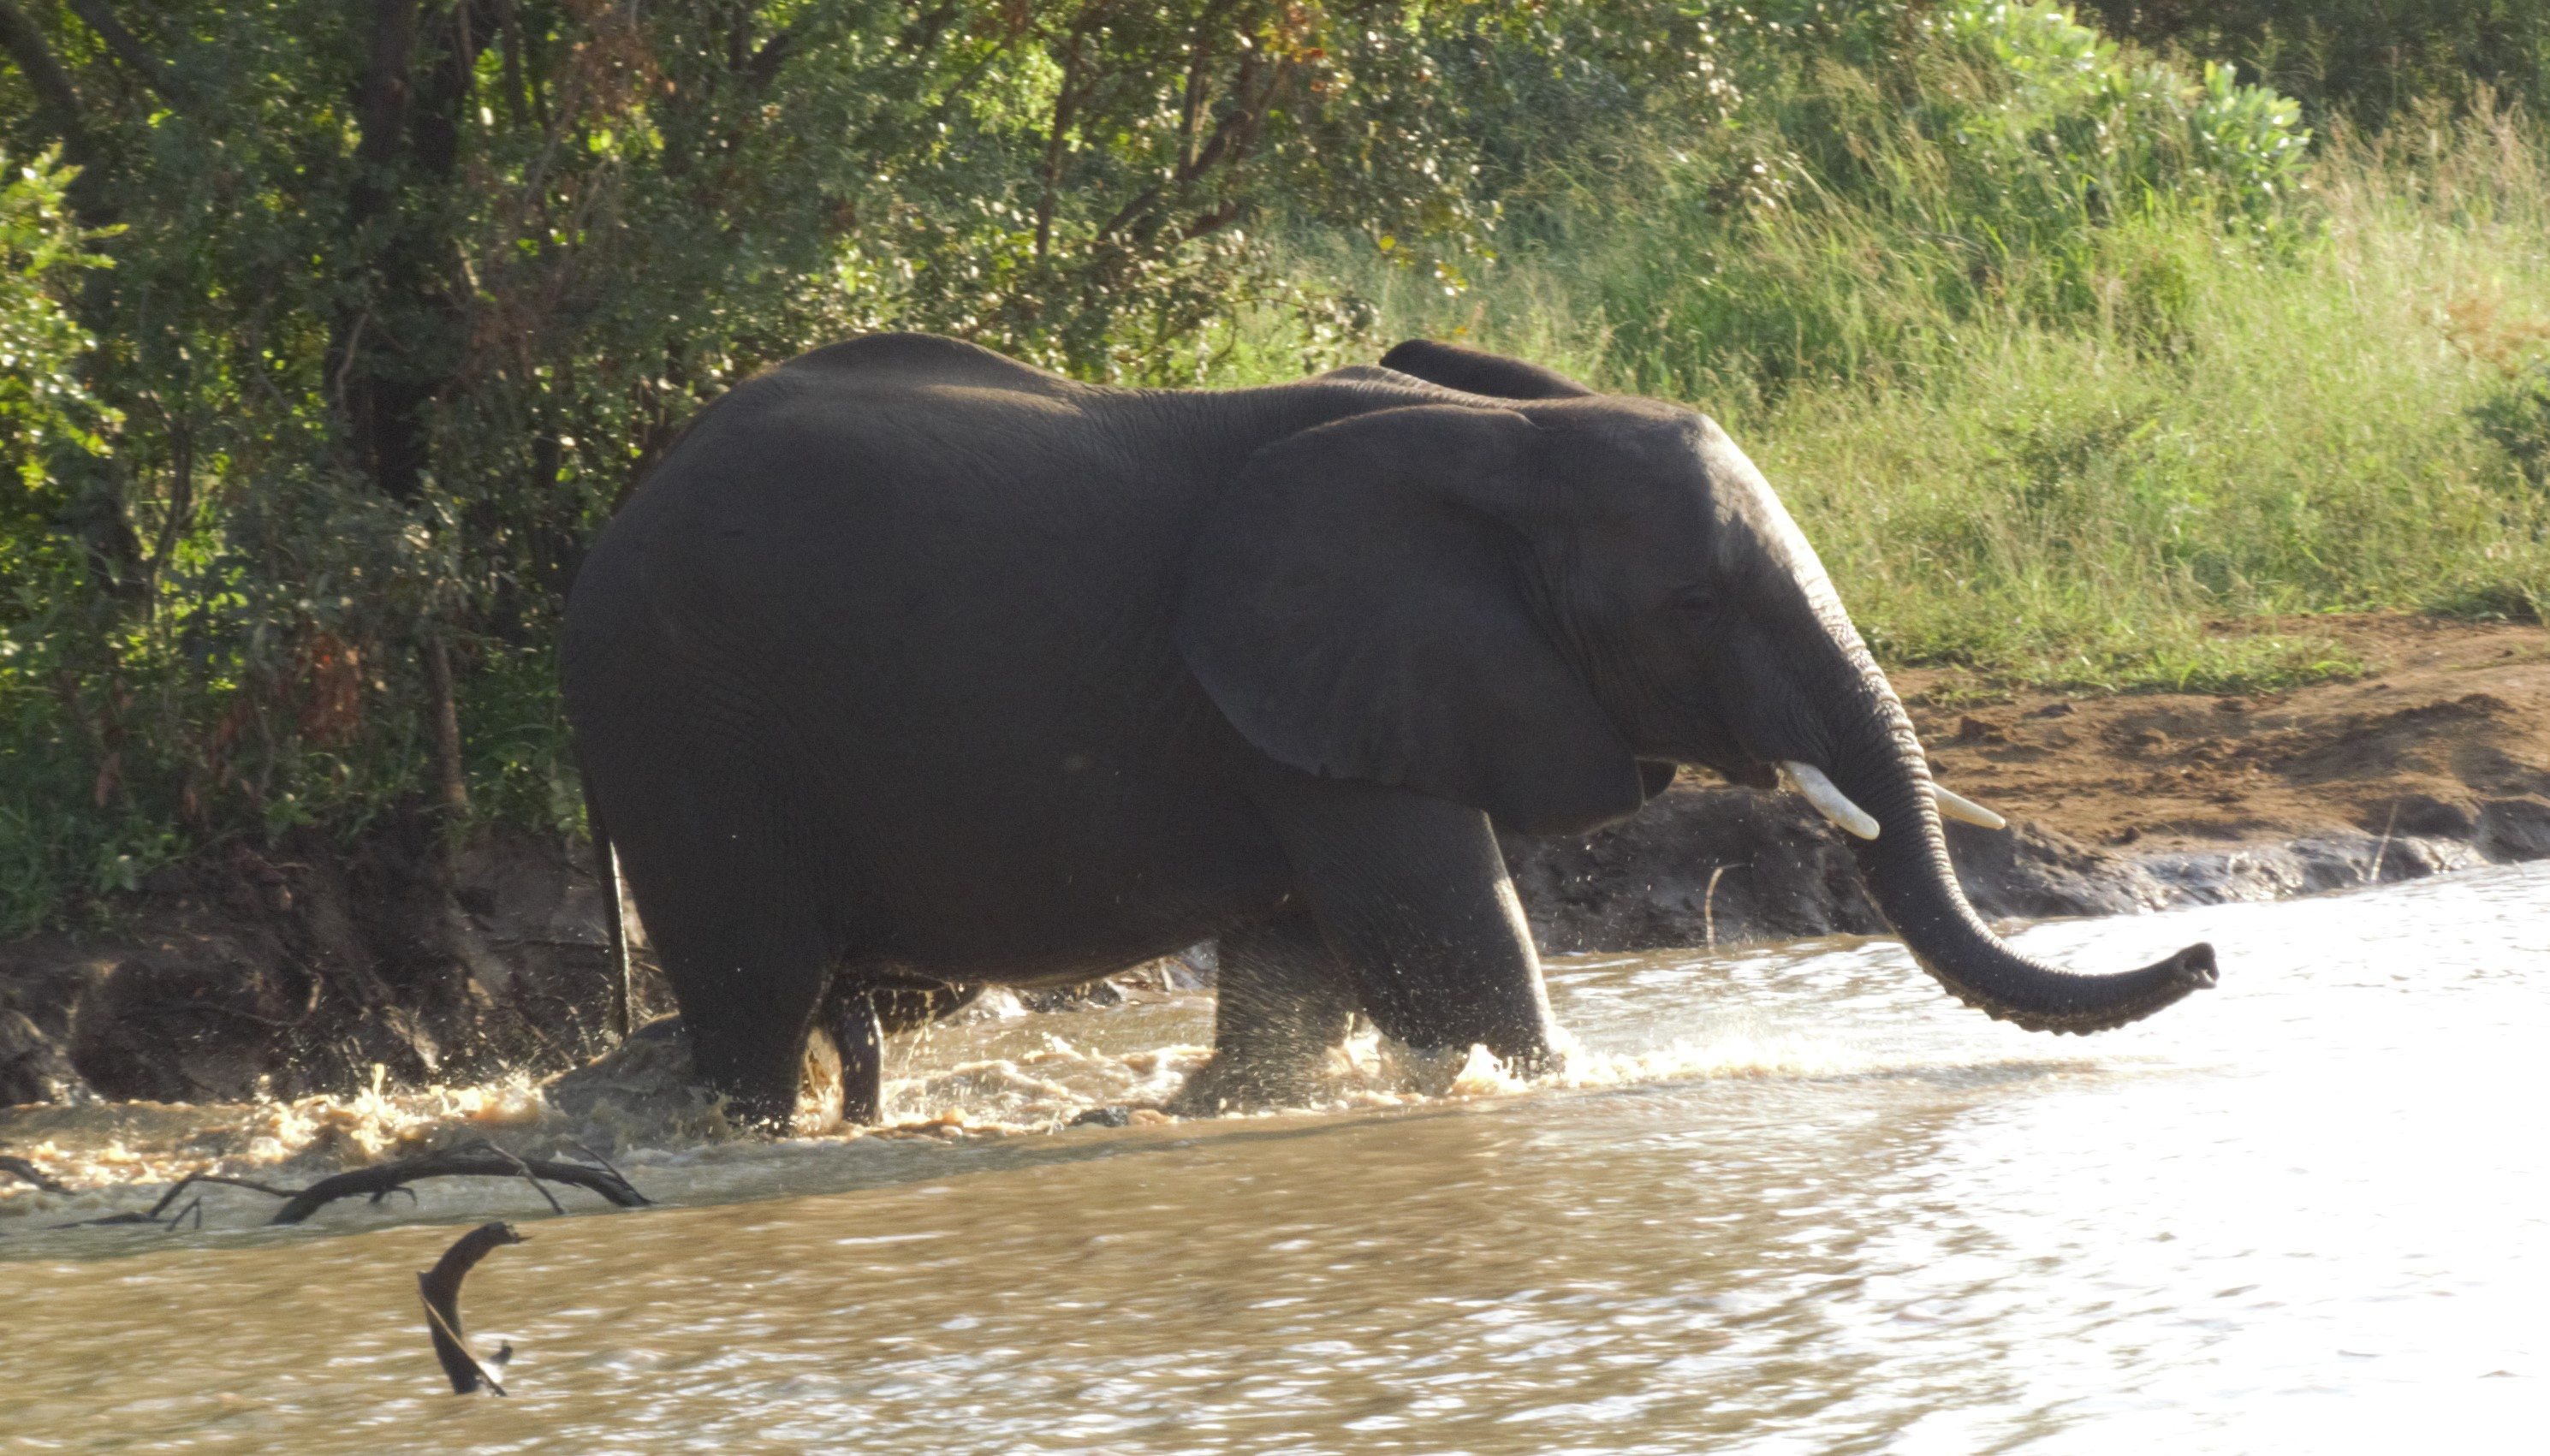 Elephant entering water_0105